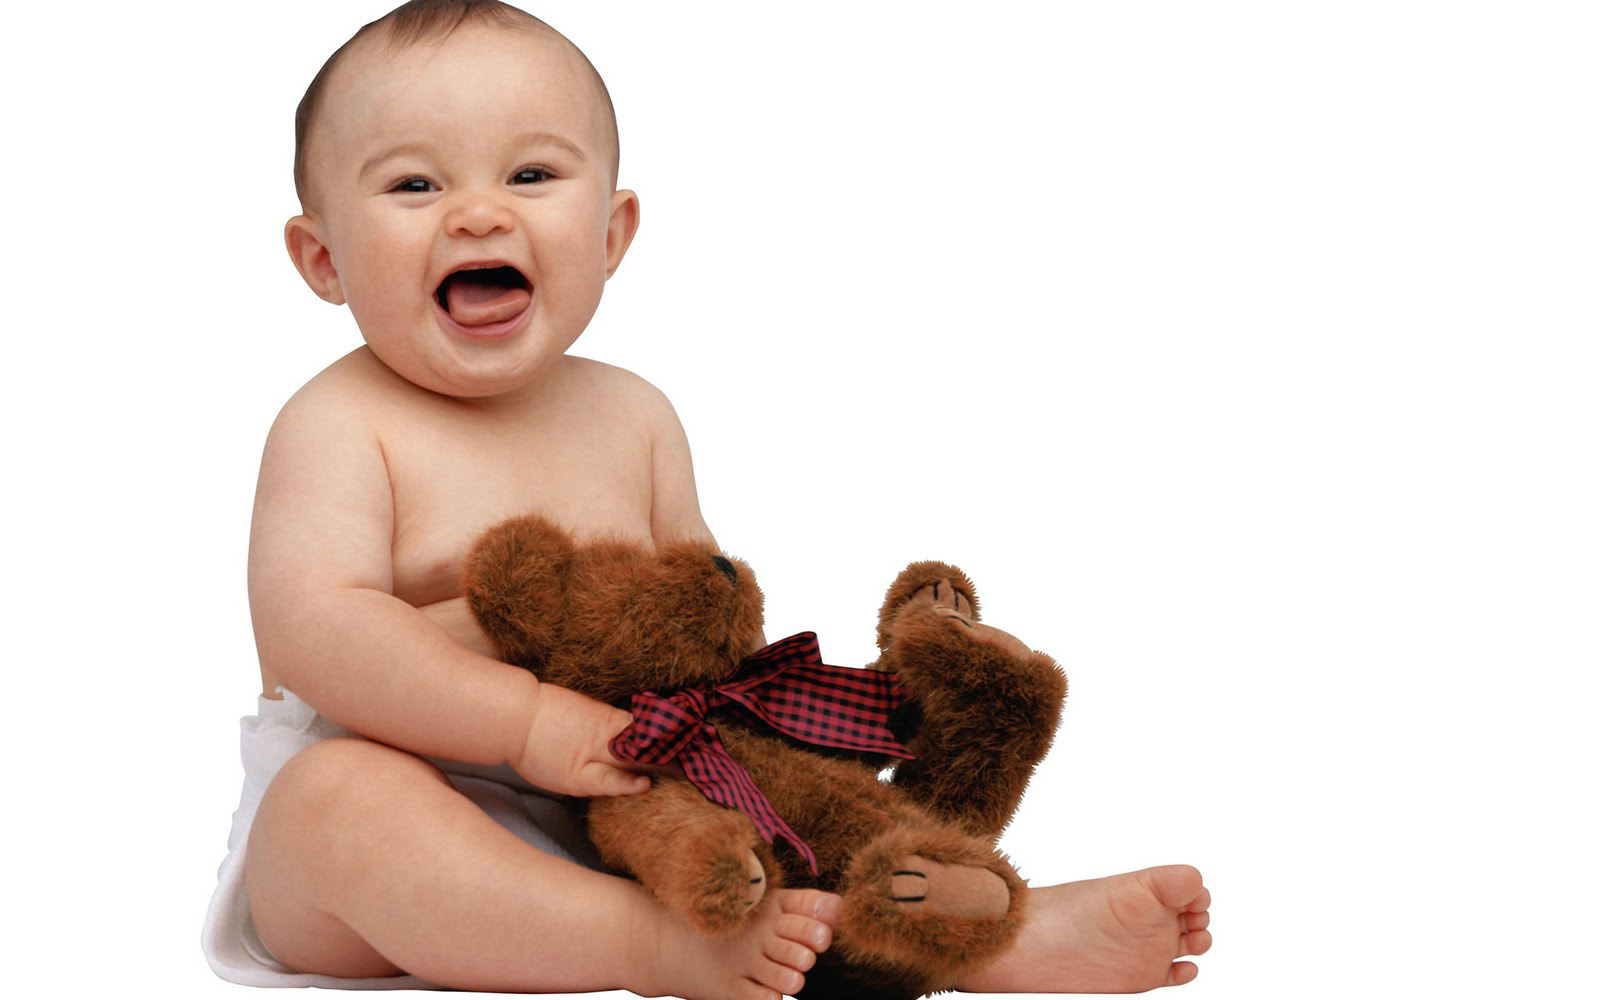 Funny Baby Love Wallpaper : 25 Free cute Funny Babies Wallpapers HD